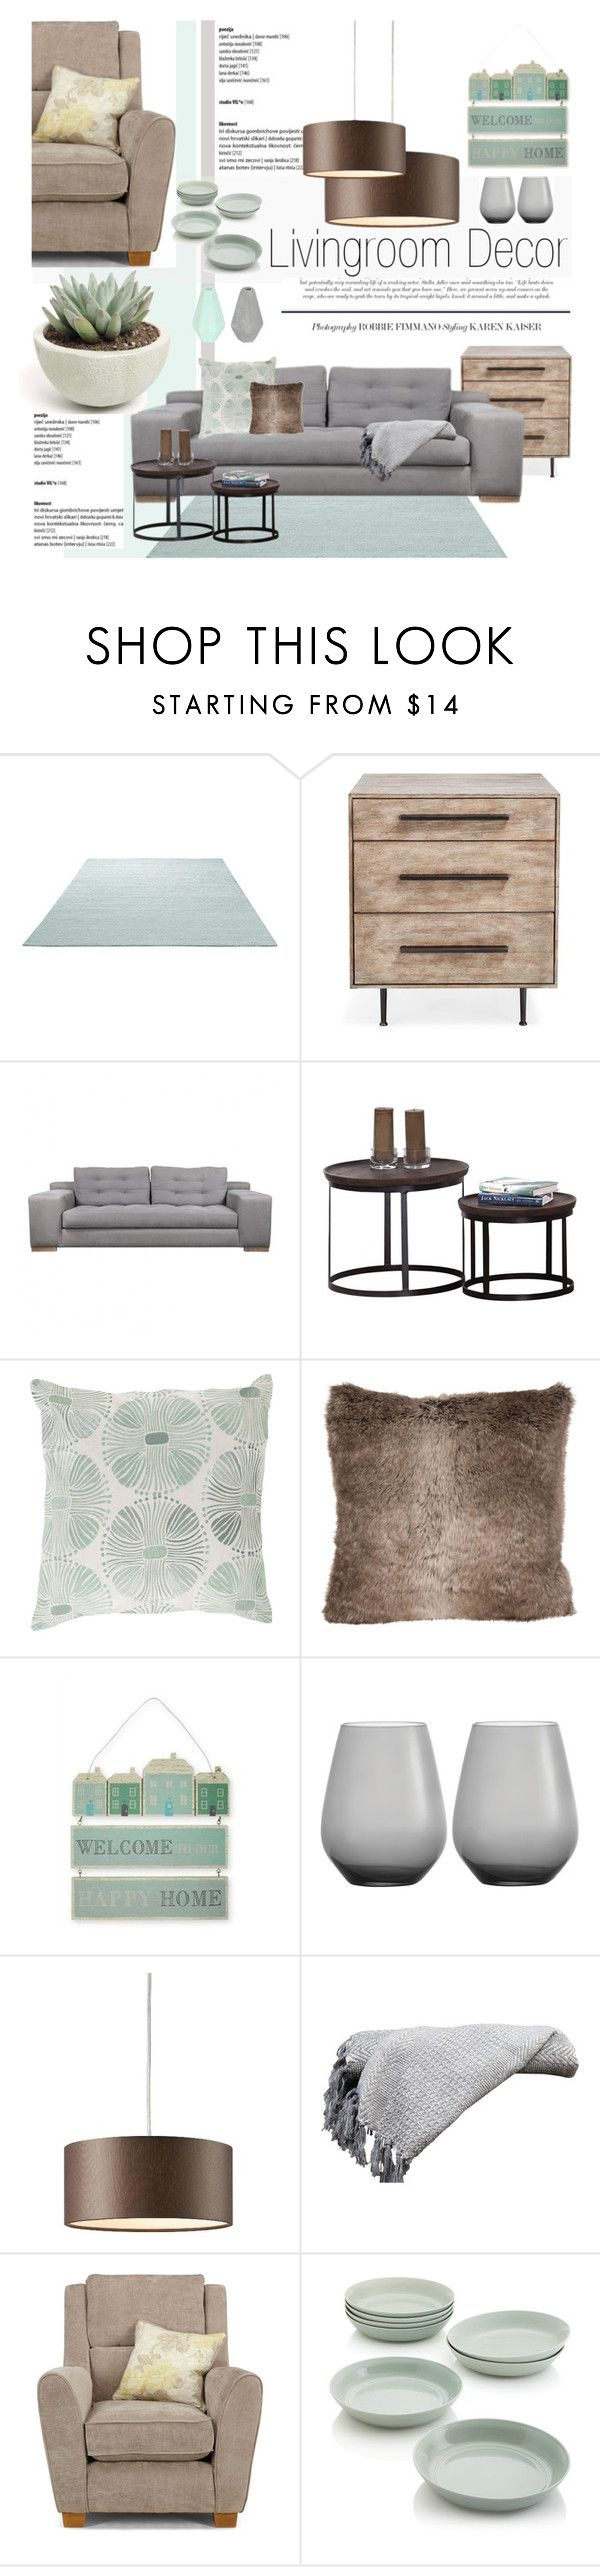 """""""Mint green, grey and brown"""" by dian-lado ❤ liked on Polyvore featuring interior, interiors, interior design, home, home decor, interior decorating, ESPRIT, MANGO, Wedgwood and Crate and Barrel"""